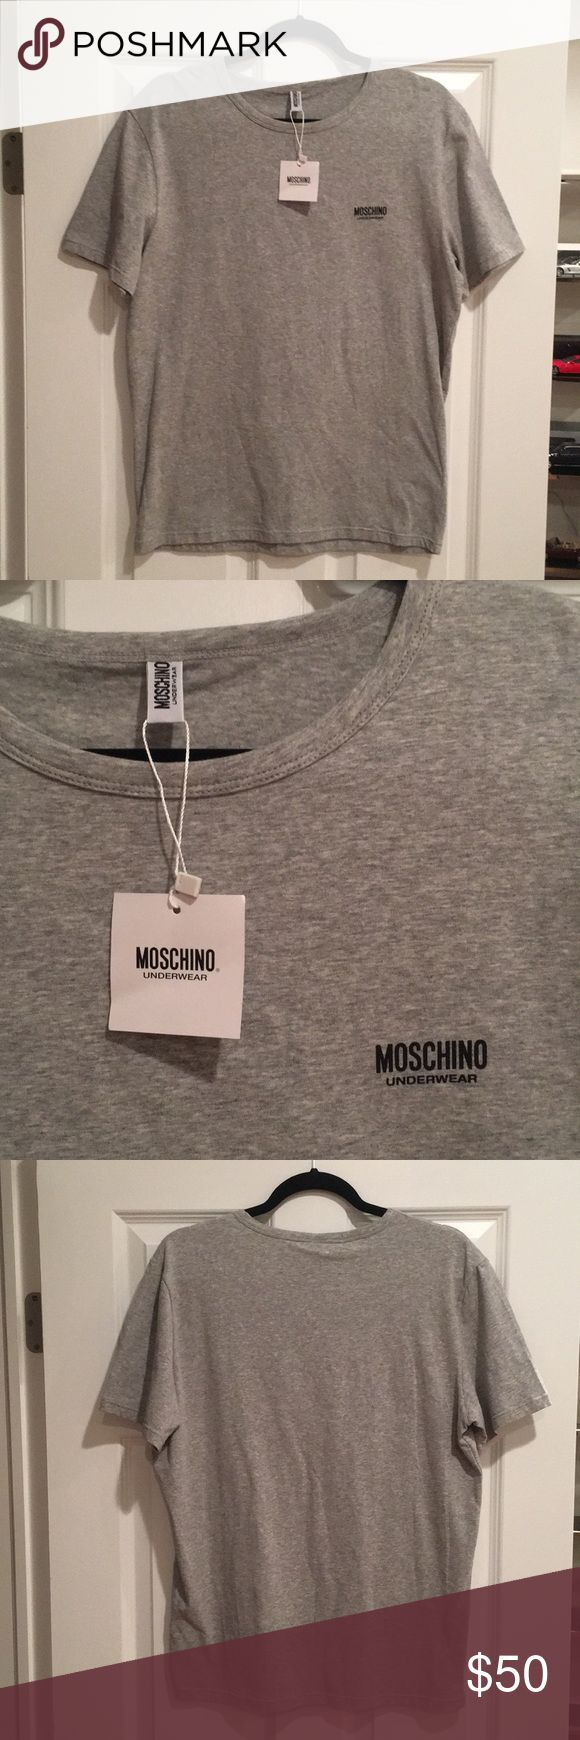 NWT BRAND NEW MOSCHINO UNDERWEAR T SHIRT Brand new.  Unworn.  Selling b/c too small and w/tags.  Original price $50.  Size small.  SPECIAL LOW PRICING FOR NEW YEARS!!!!  LOW PRICING ENDS ON JANUARY 12!!! Moschino Shirts Tees - Short Sleeve